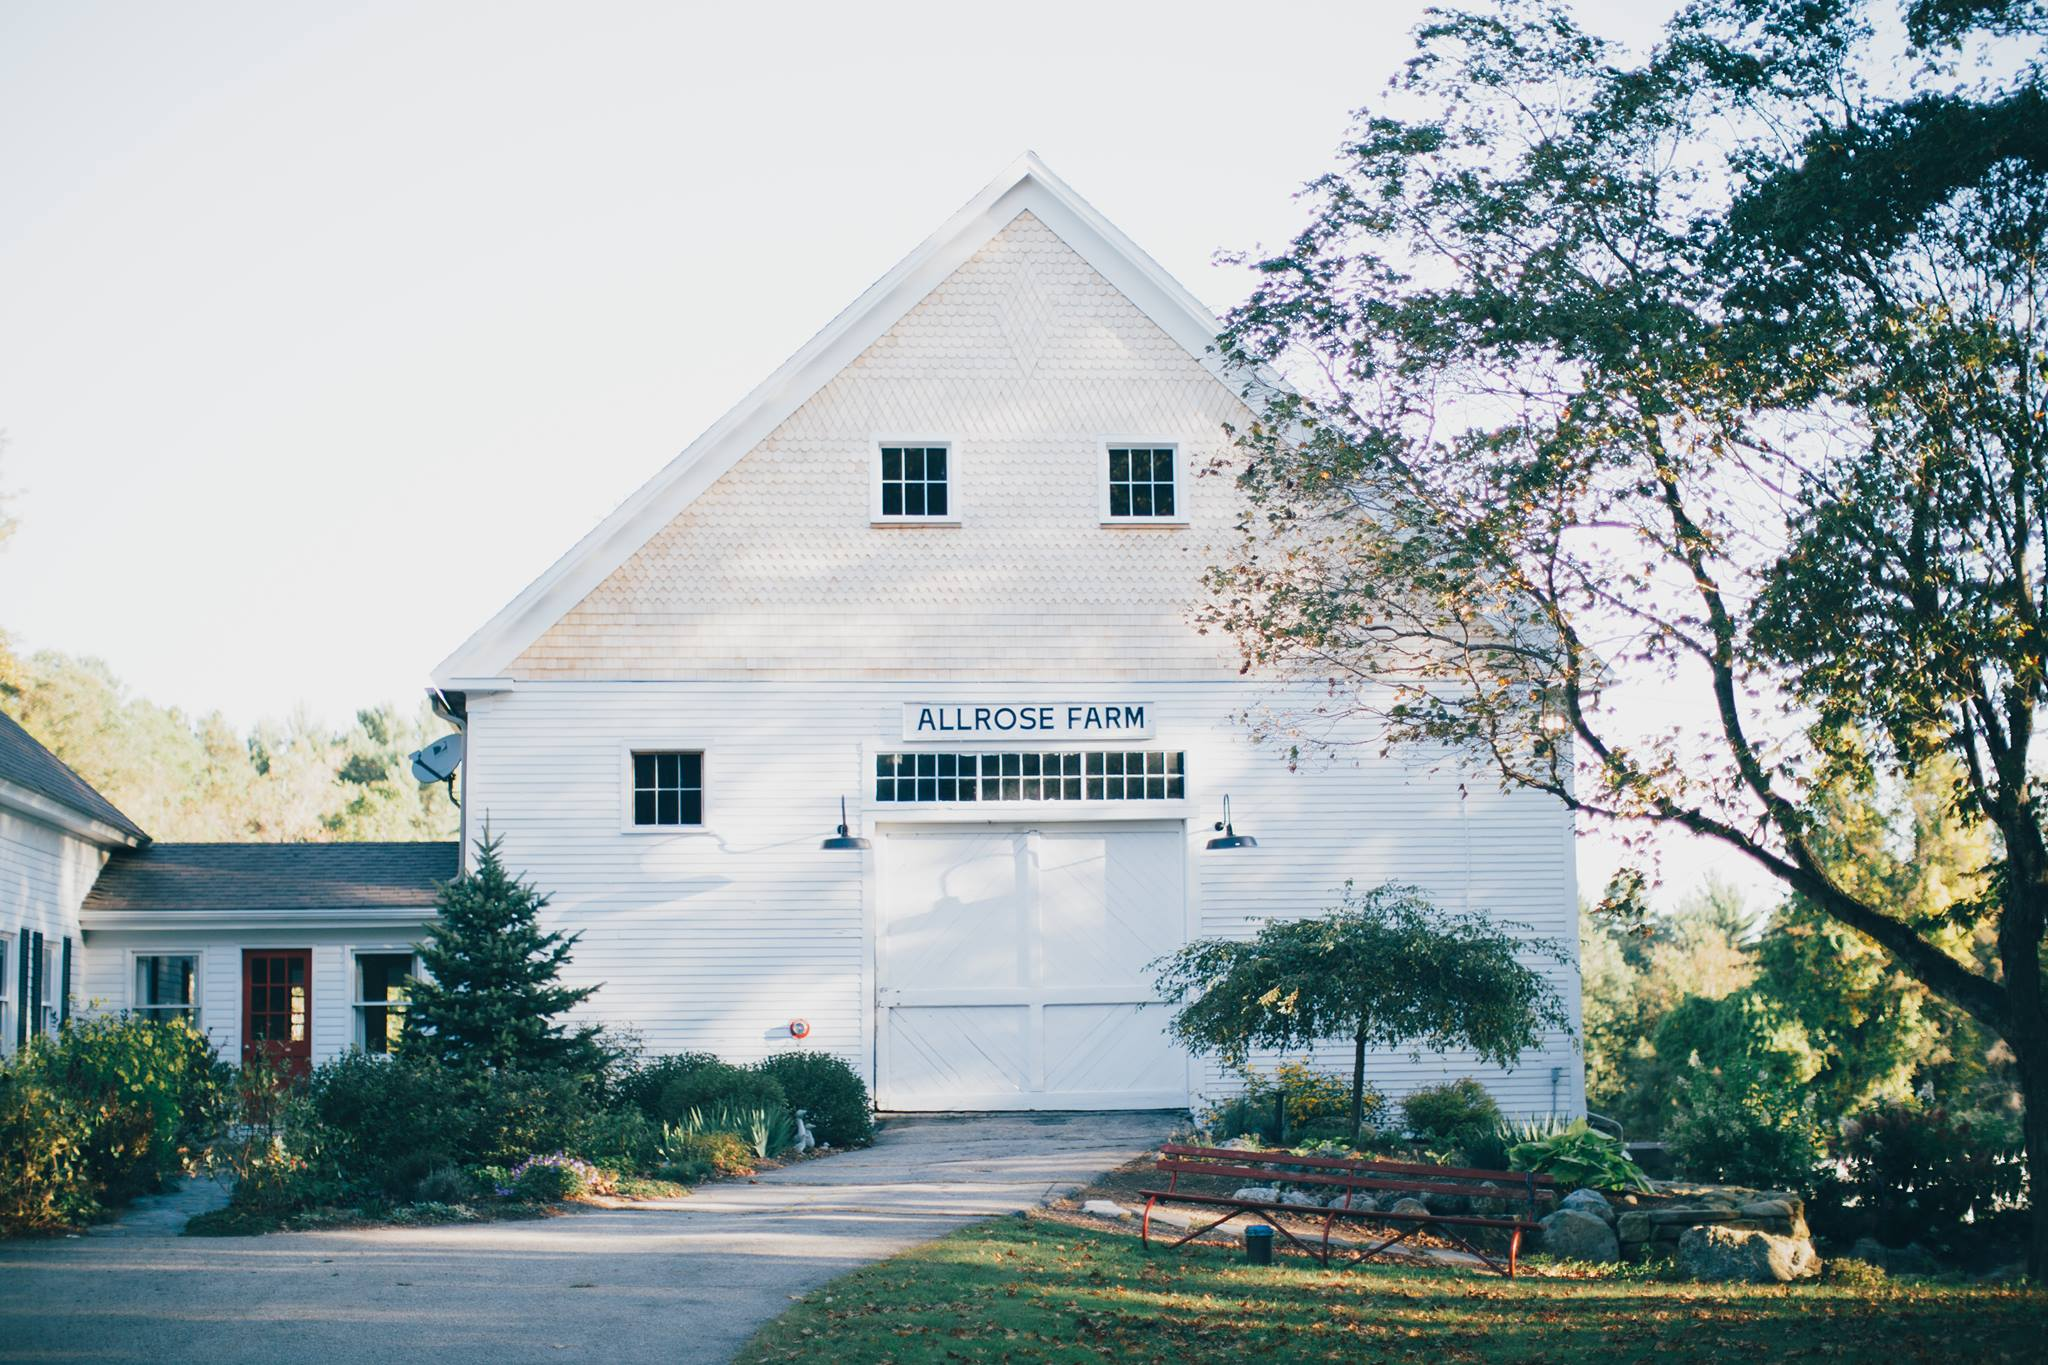 Top Barn Wedding Venue NH, Farm